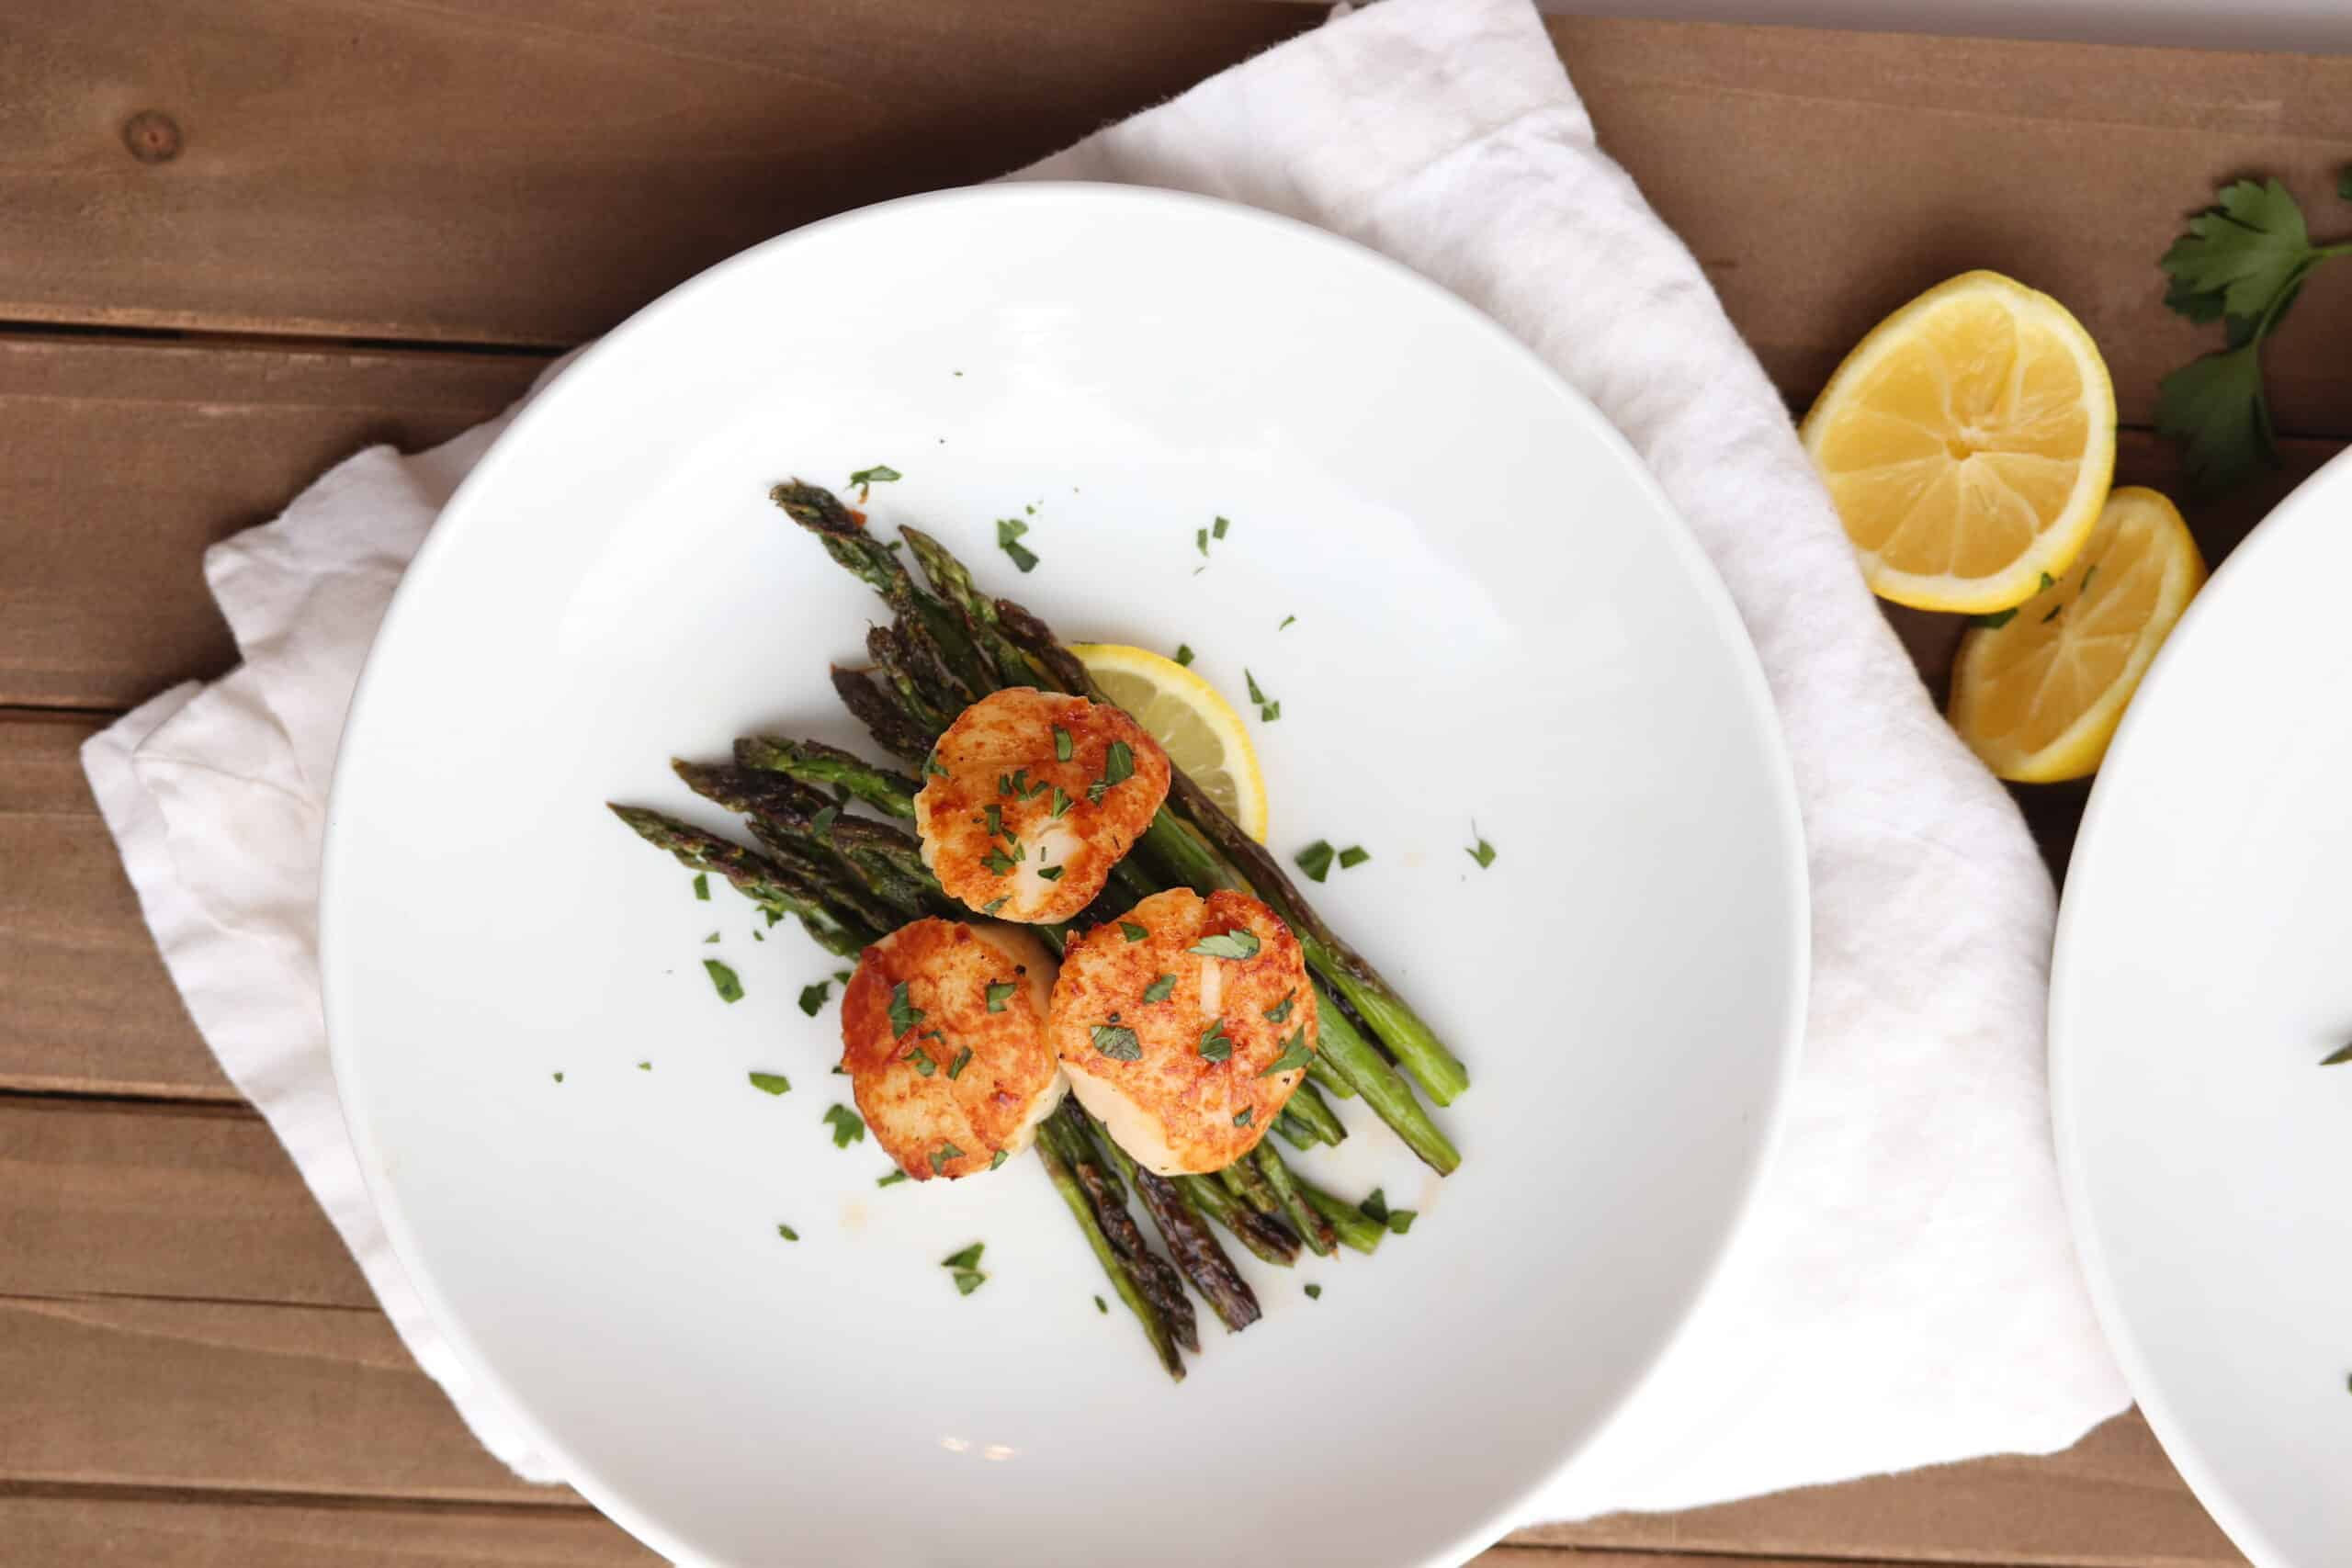 scallops and asparagus cooked on blackstone griddle